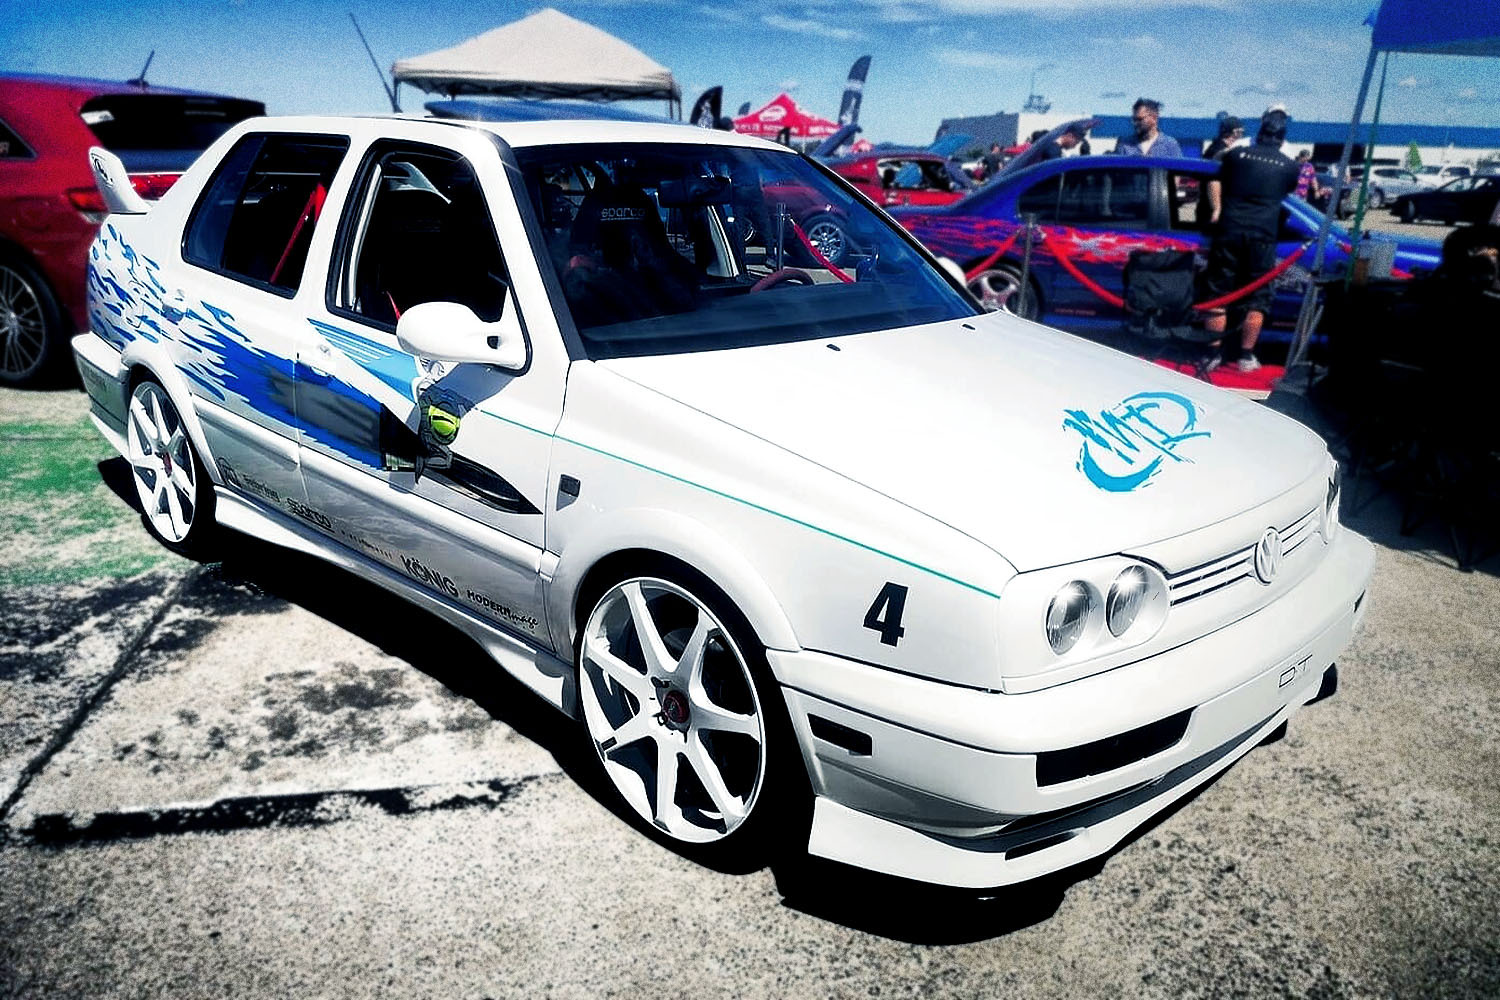 A replica of the white Volkswagen Jetta driven by Jesse (Chad Lindberg) in the first Fast and Furious movie, built by Dominic Dubreuil